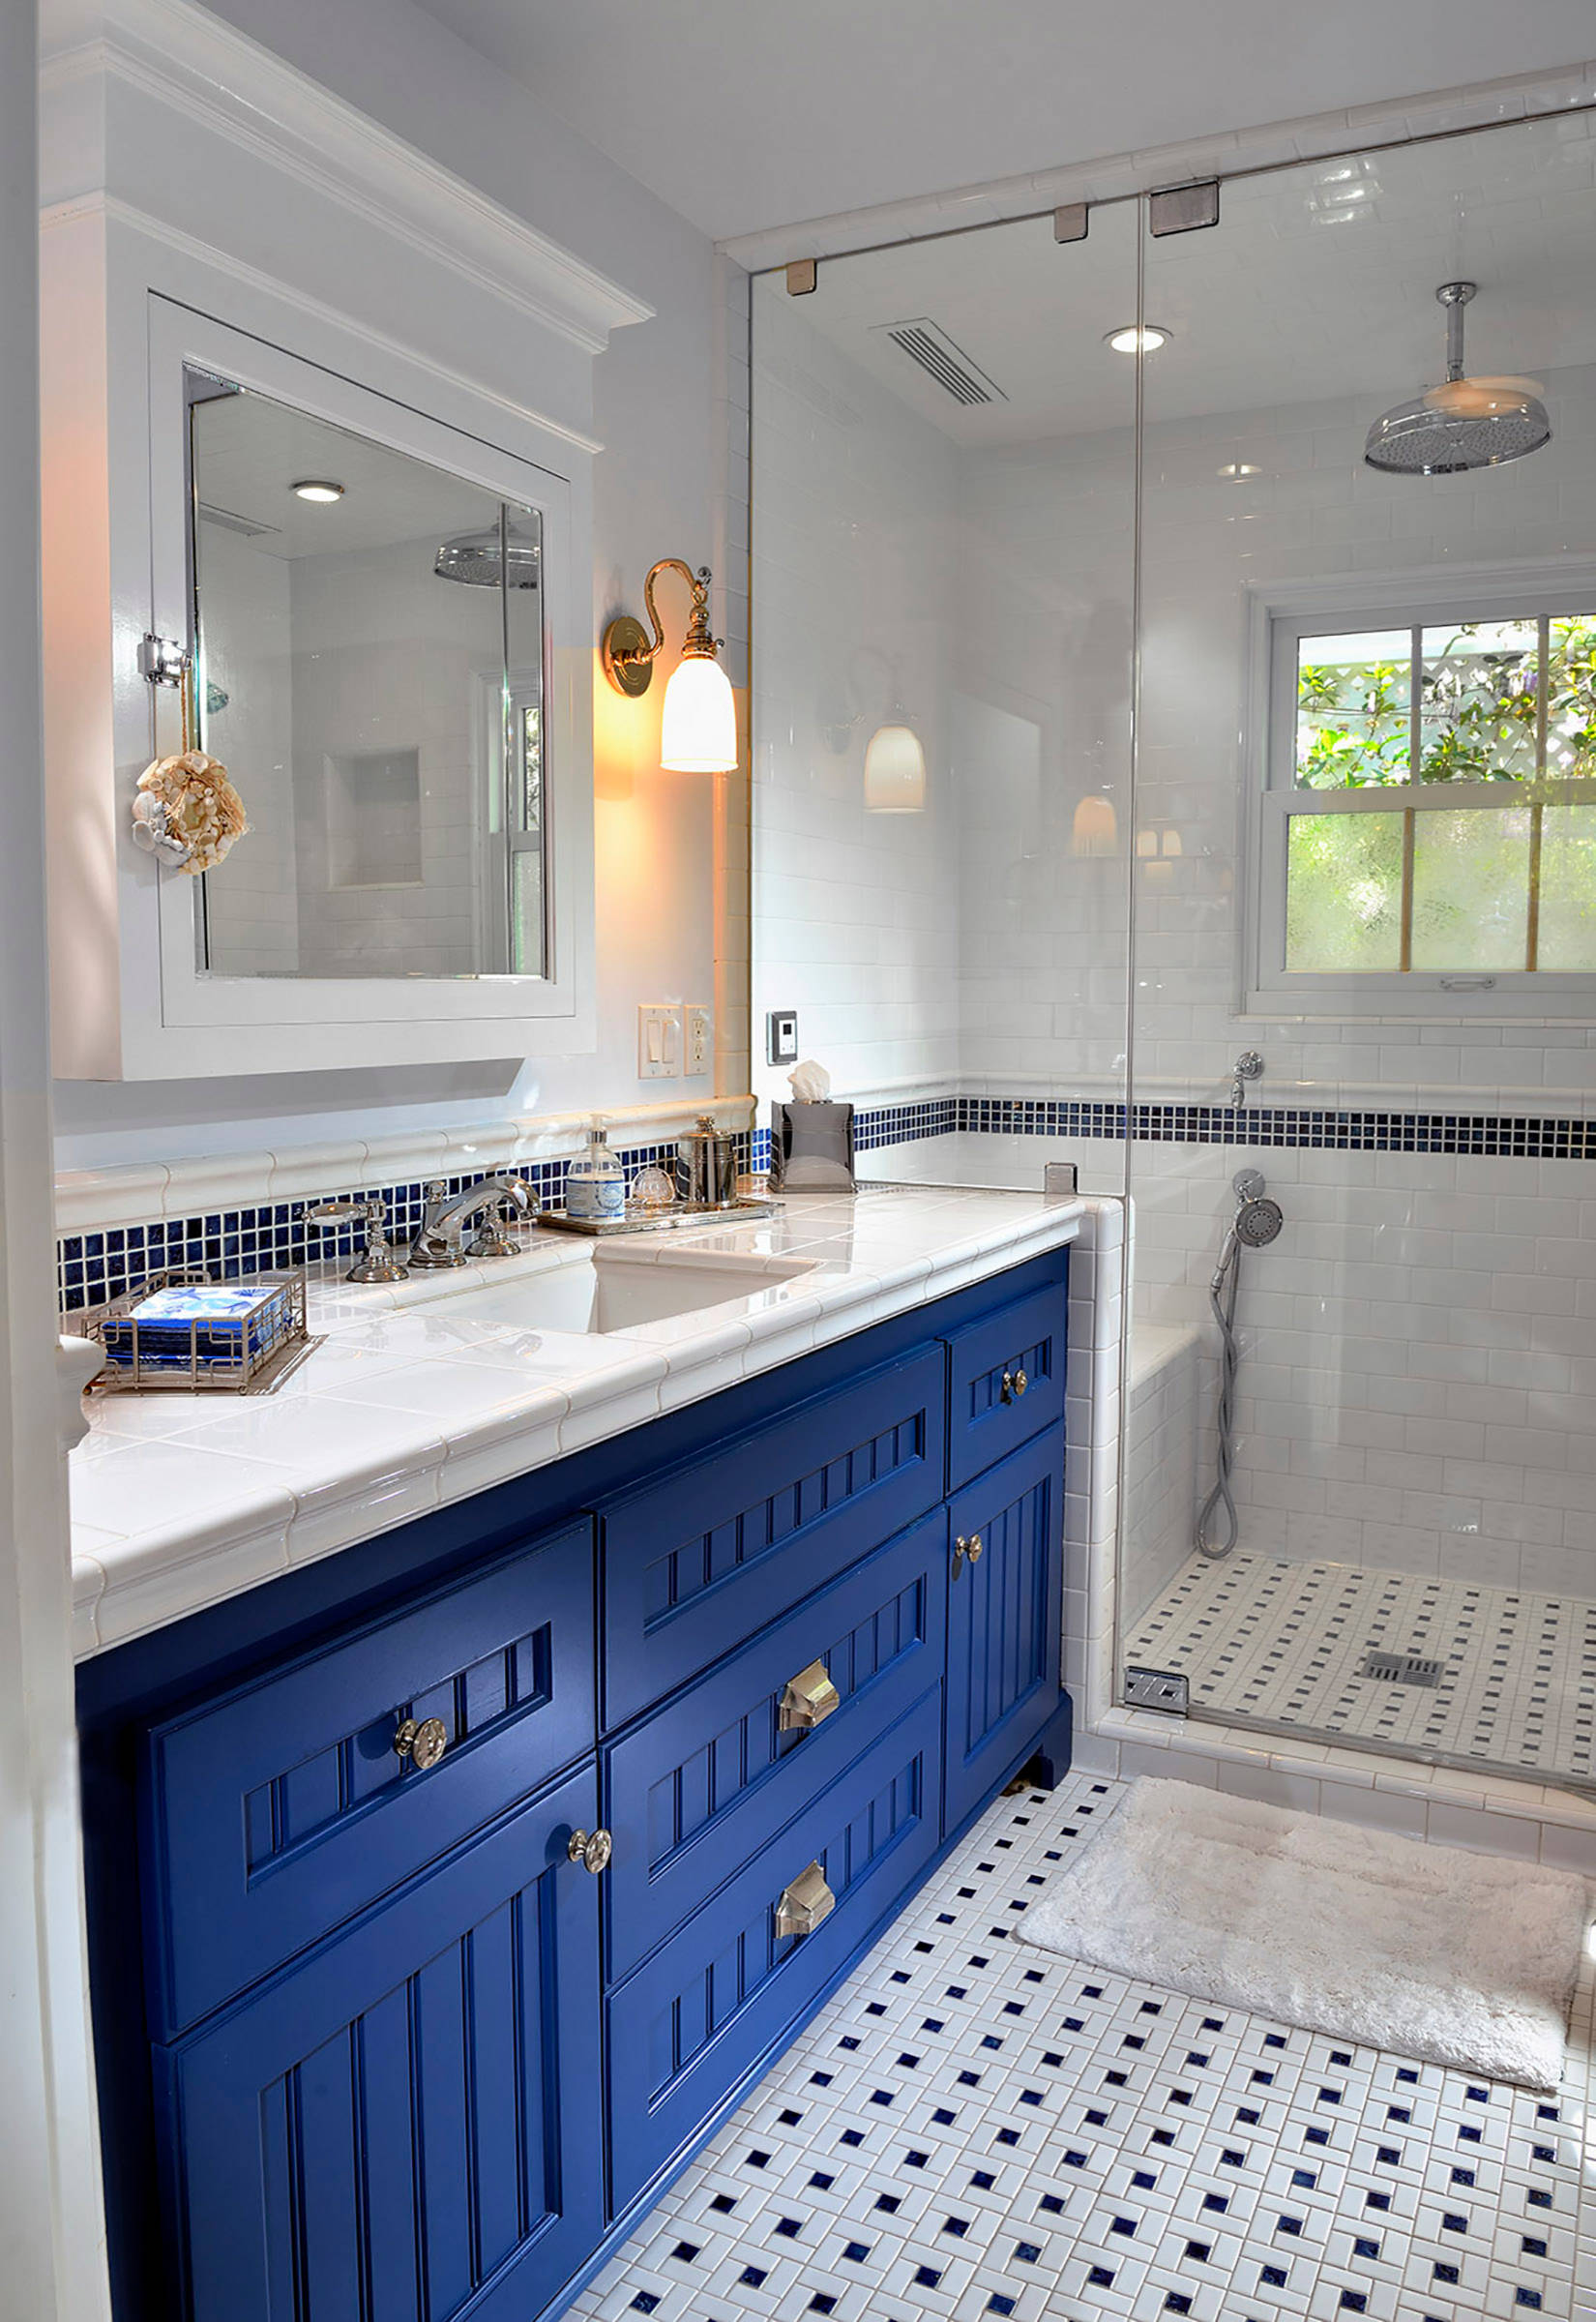 75 Beautiful Bathroom With Tile Countertops Pictures Ideas November 2020 Houzz